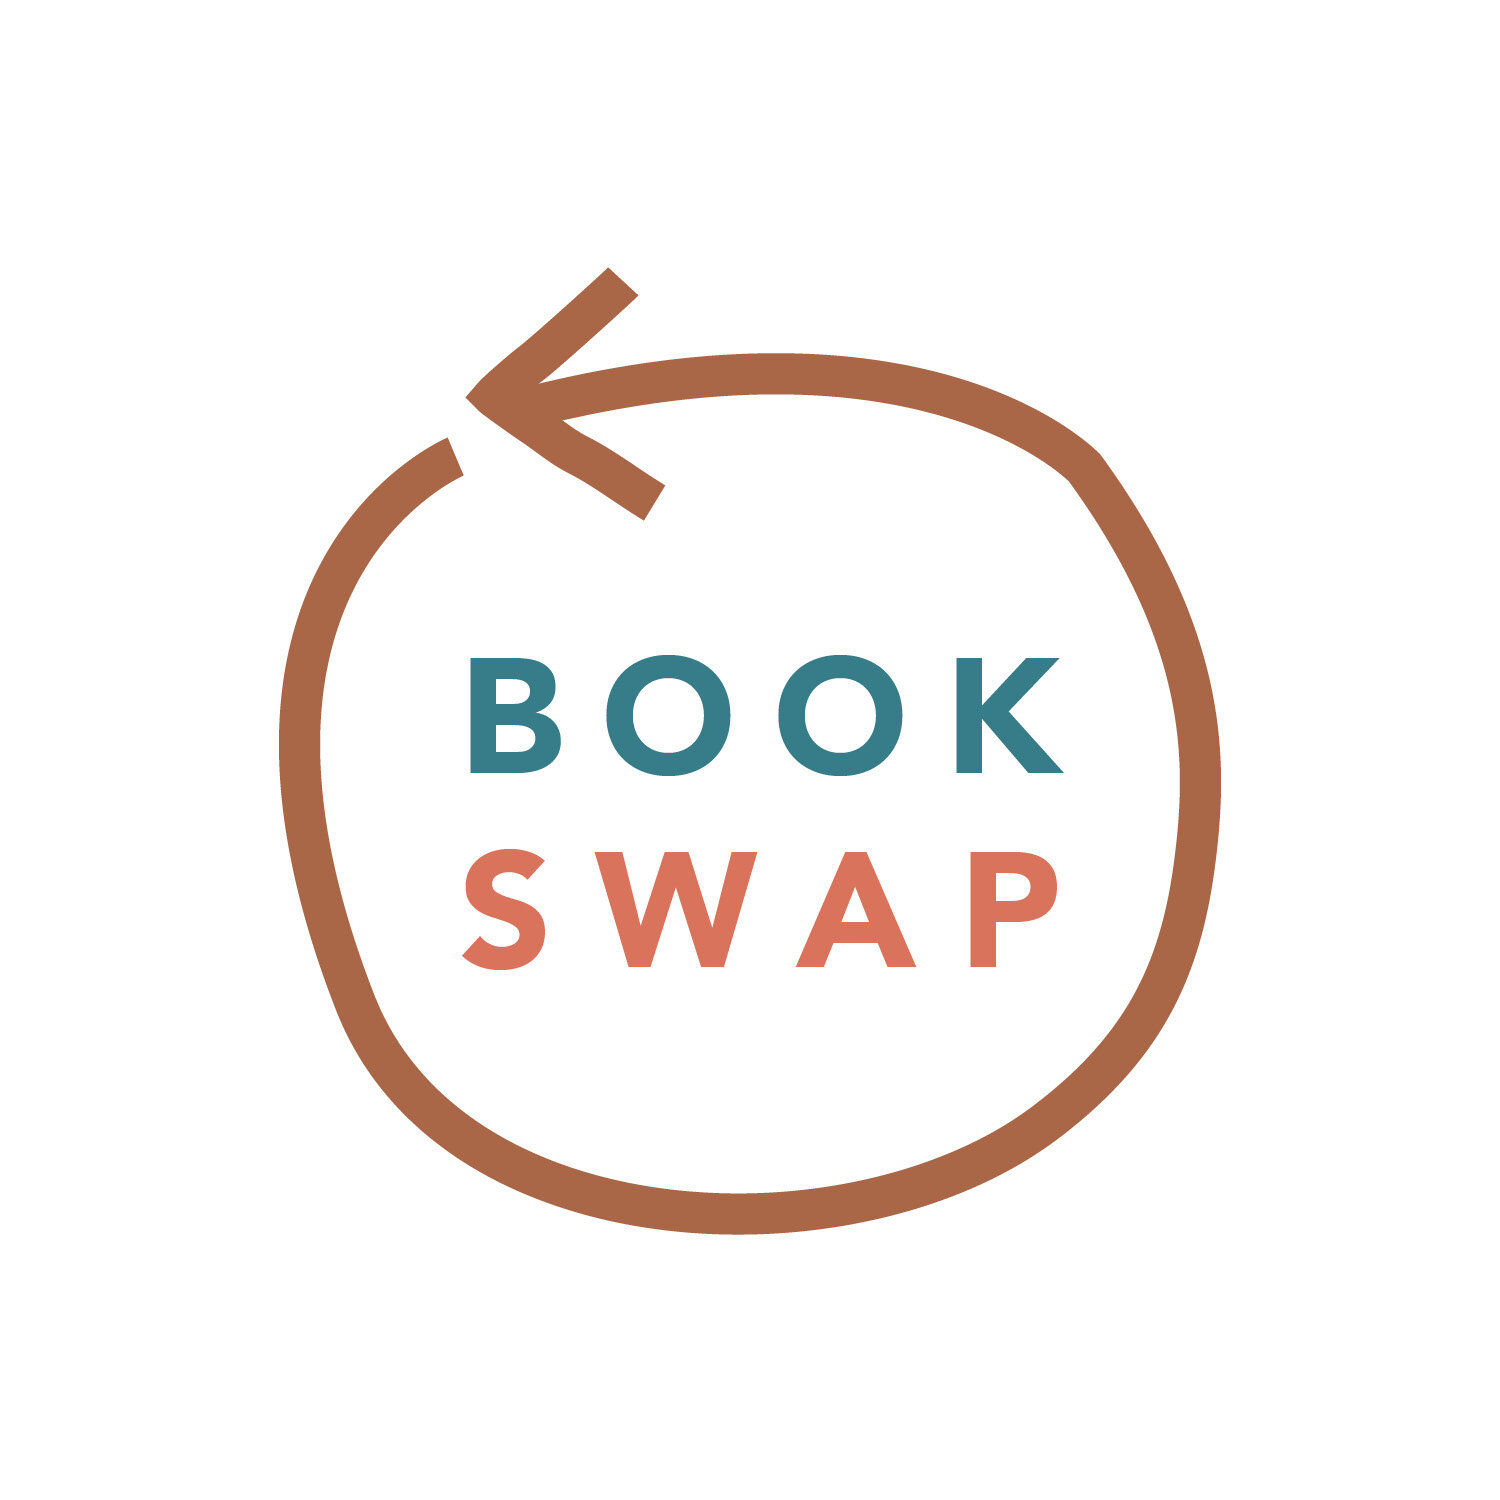 book swap square.jpg